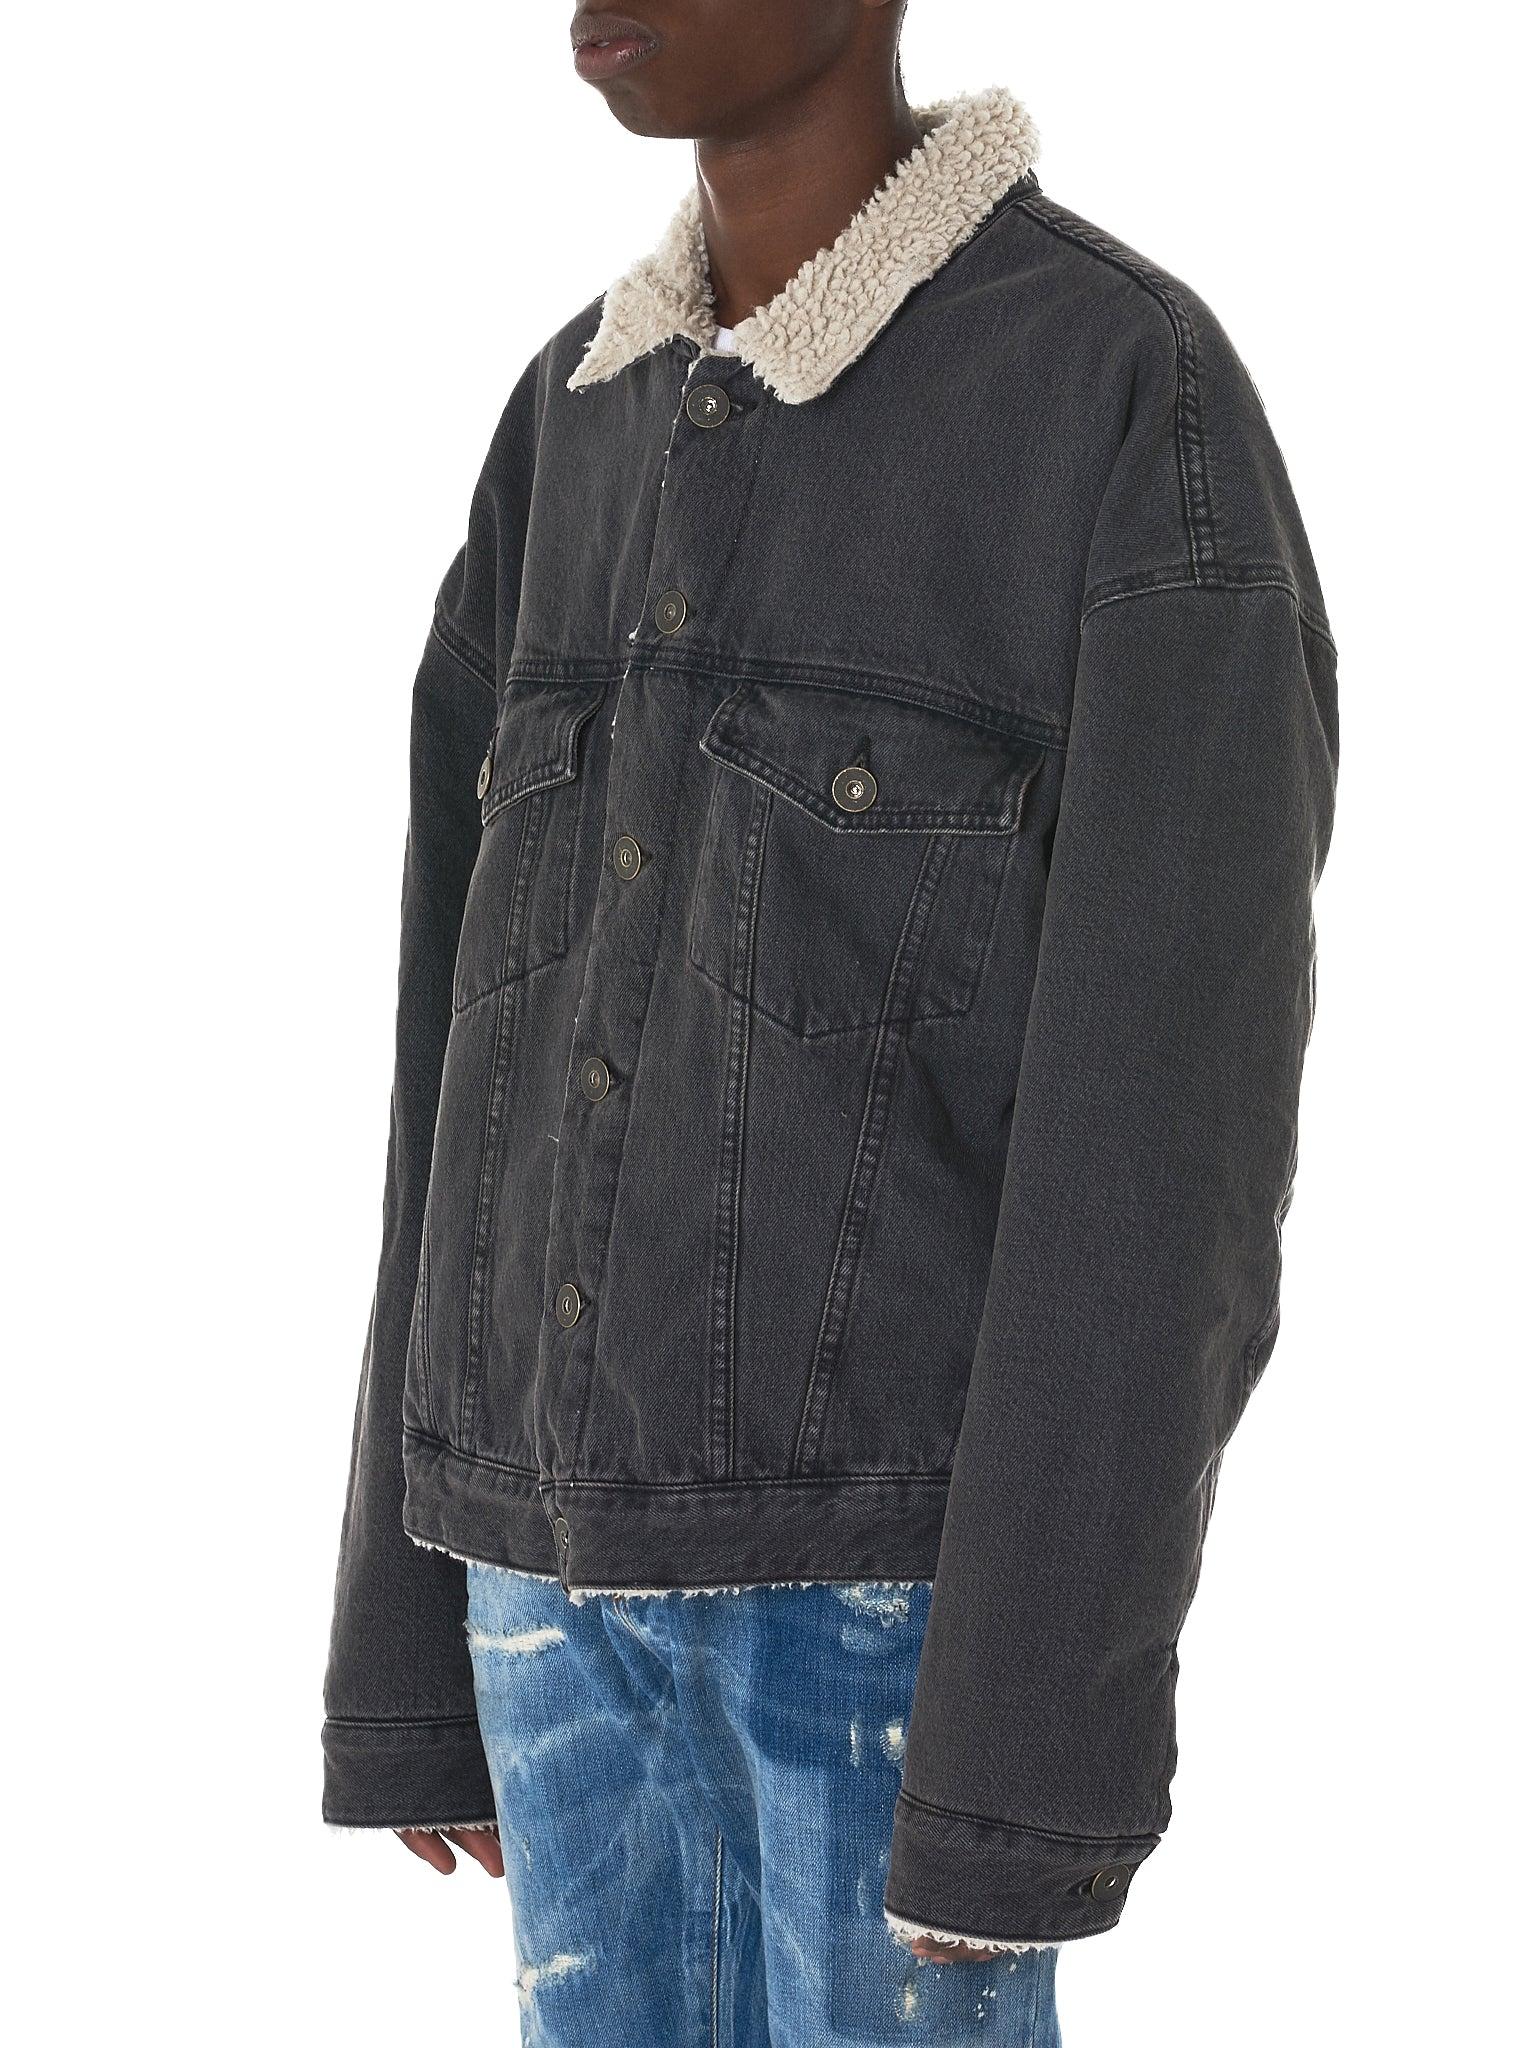 Shearling Denim Jacket (KW5U6098-NKN)